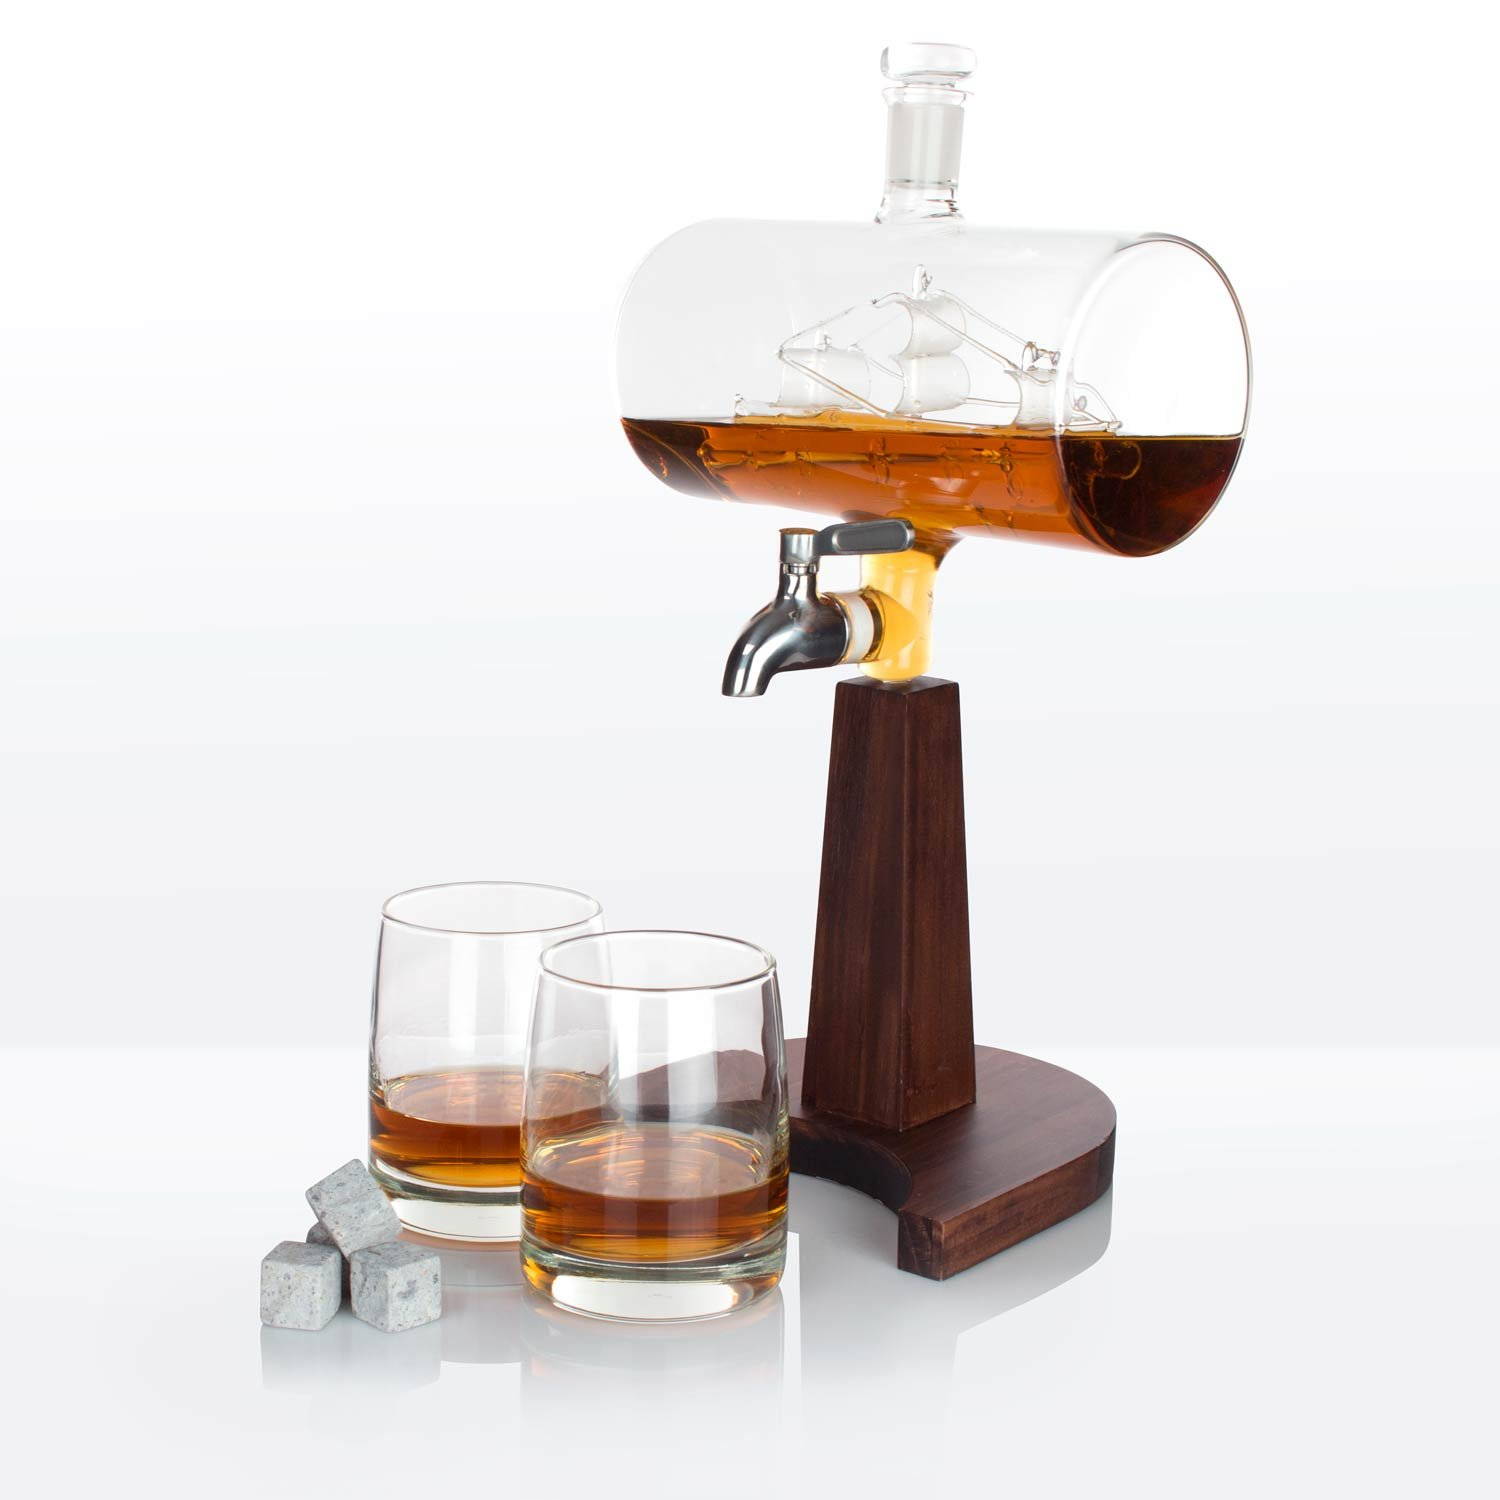 Atterstone Cylinder Ship Whiskey Decanter Set - 1150ml / Full Set with 2 Whiskey Glasses, Decanter Stand, Whiskey Sipping Stones and Funnel